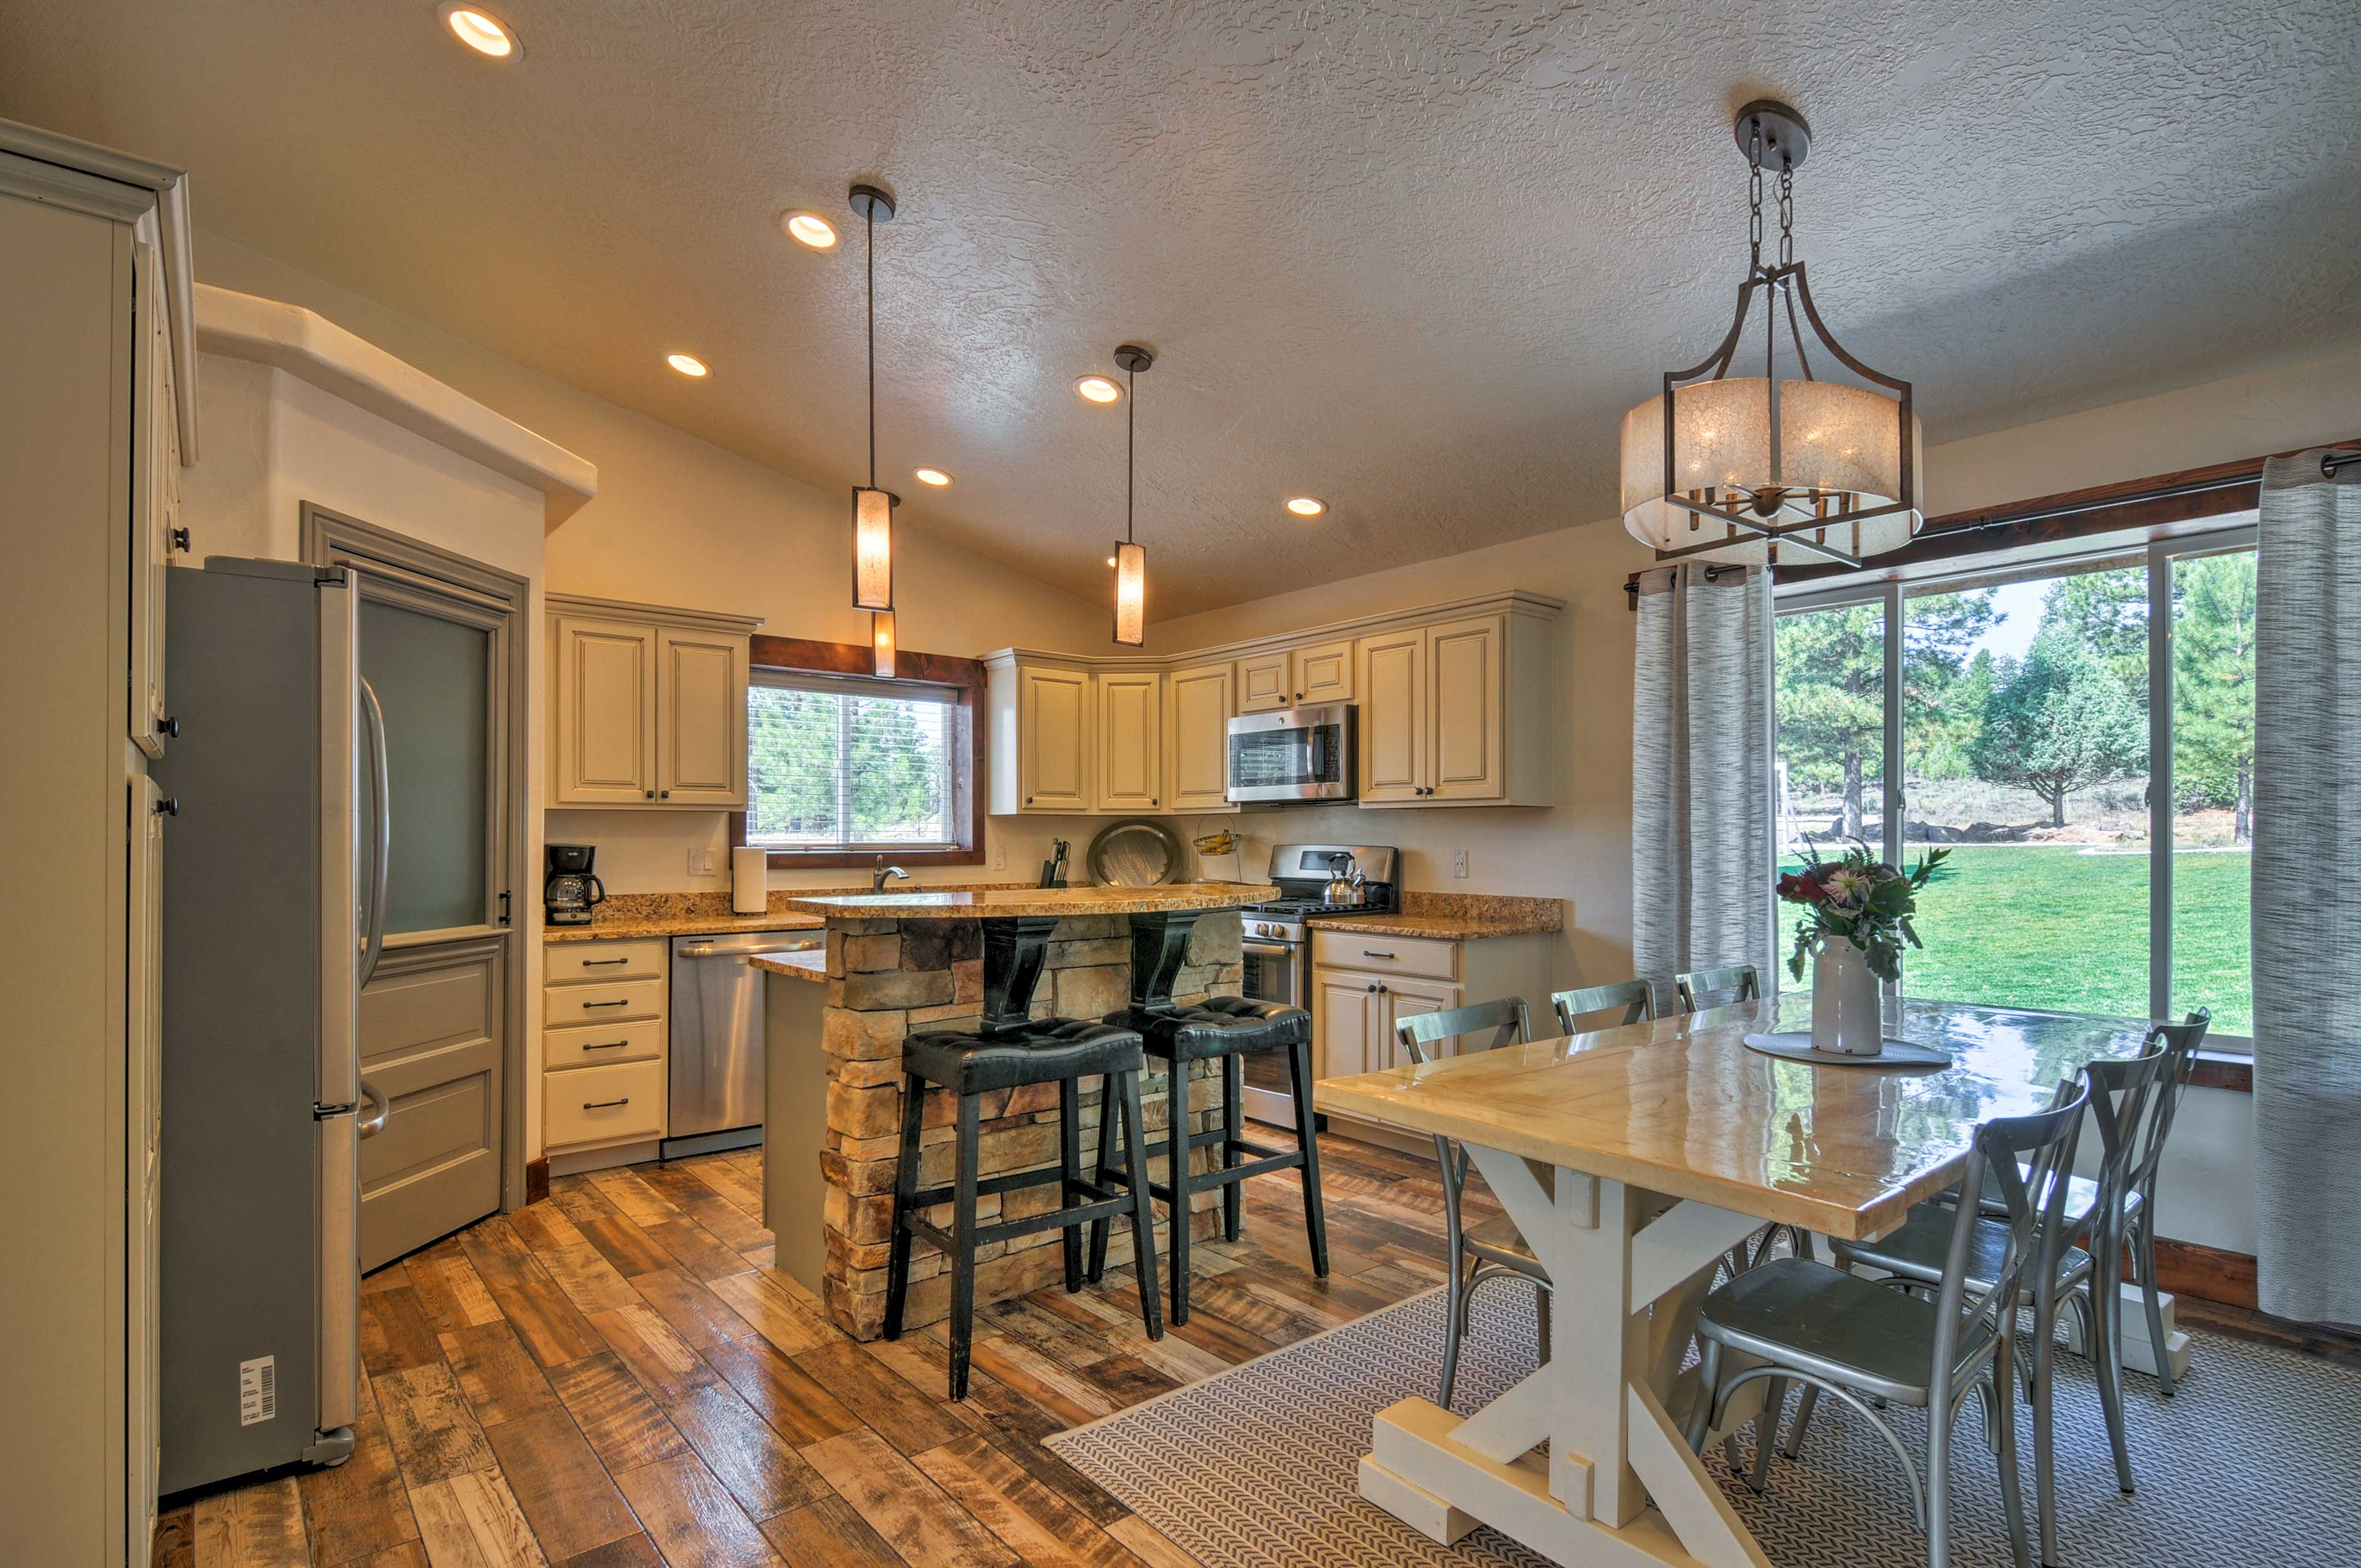 Stainless steel appliances and modern amenities complete the kitchen.